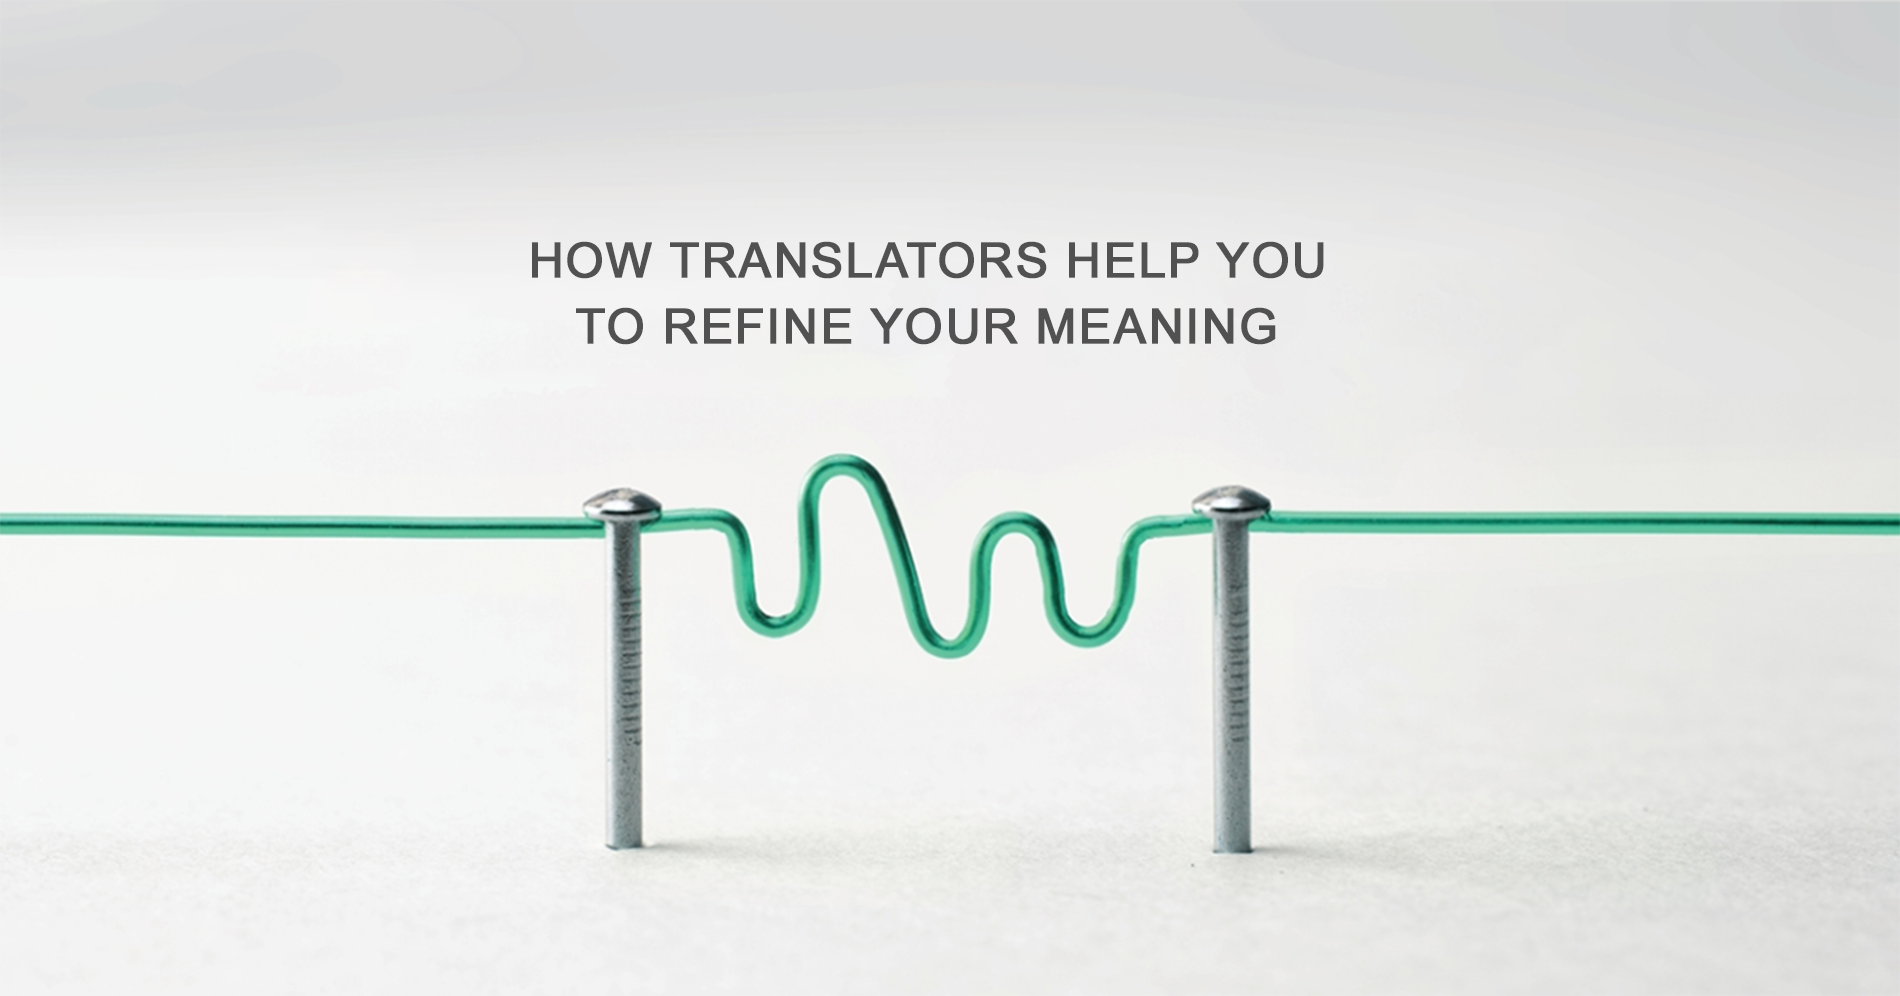 How Translators Help You to Refine Your Meaning